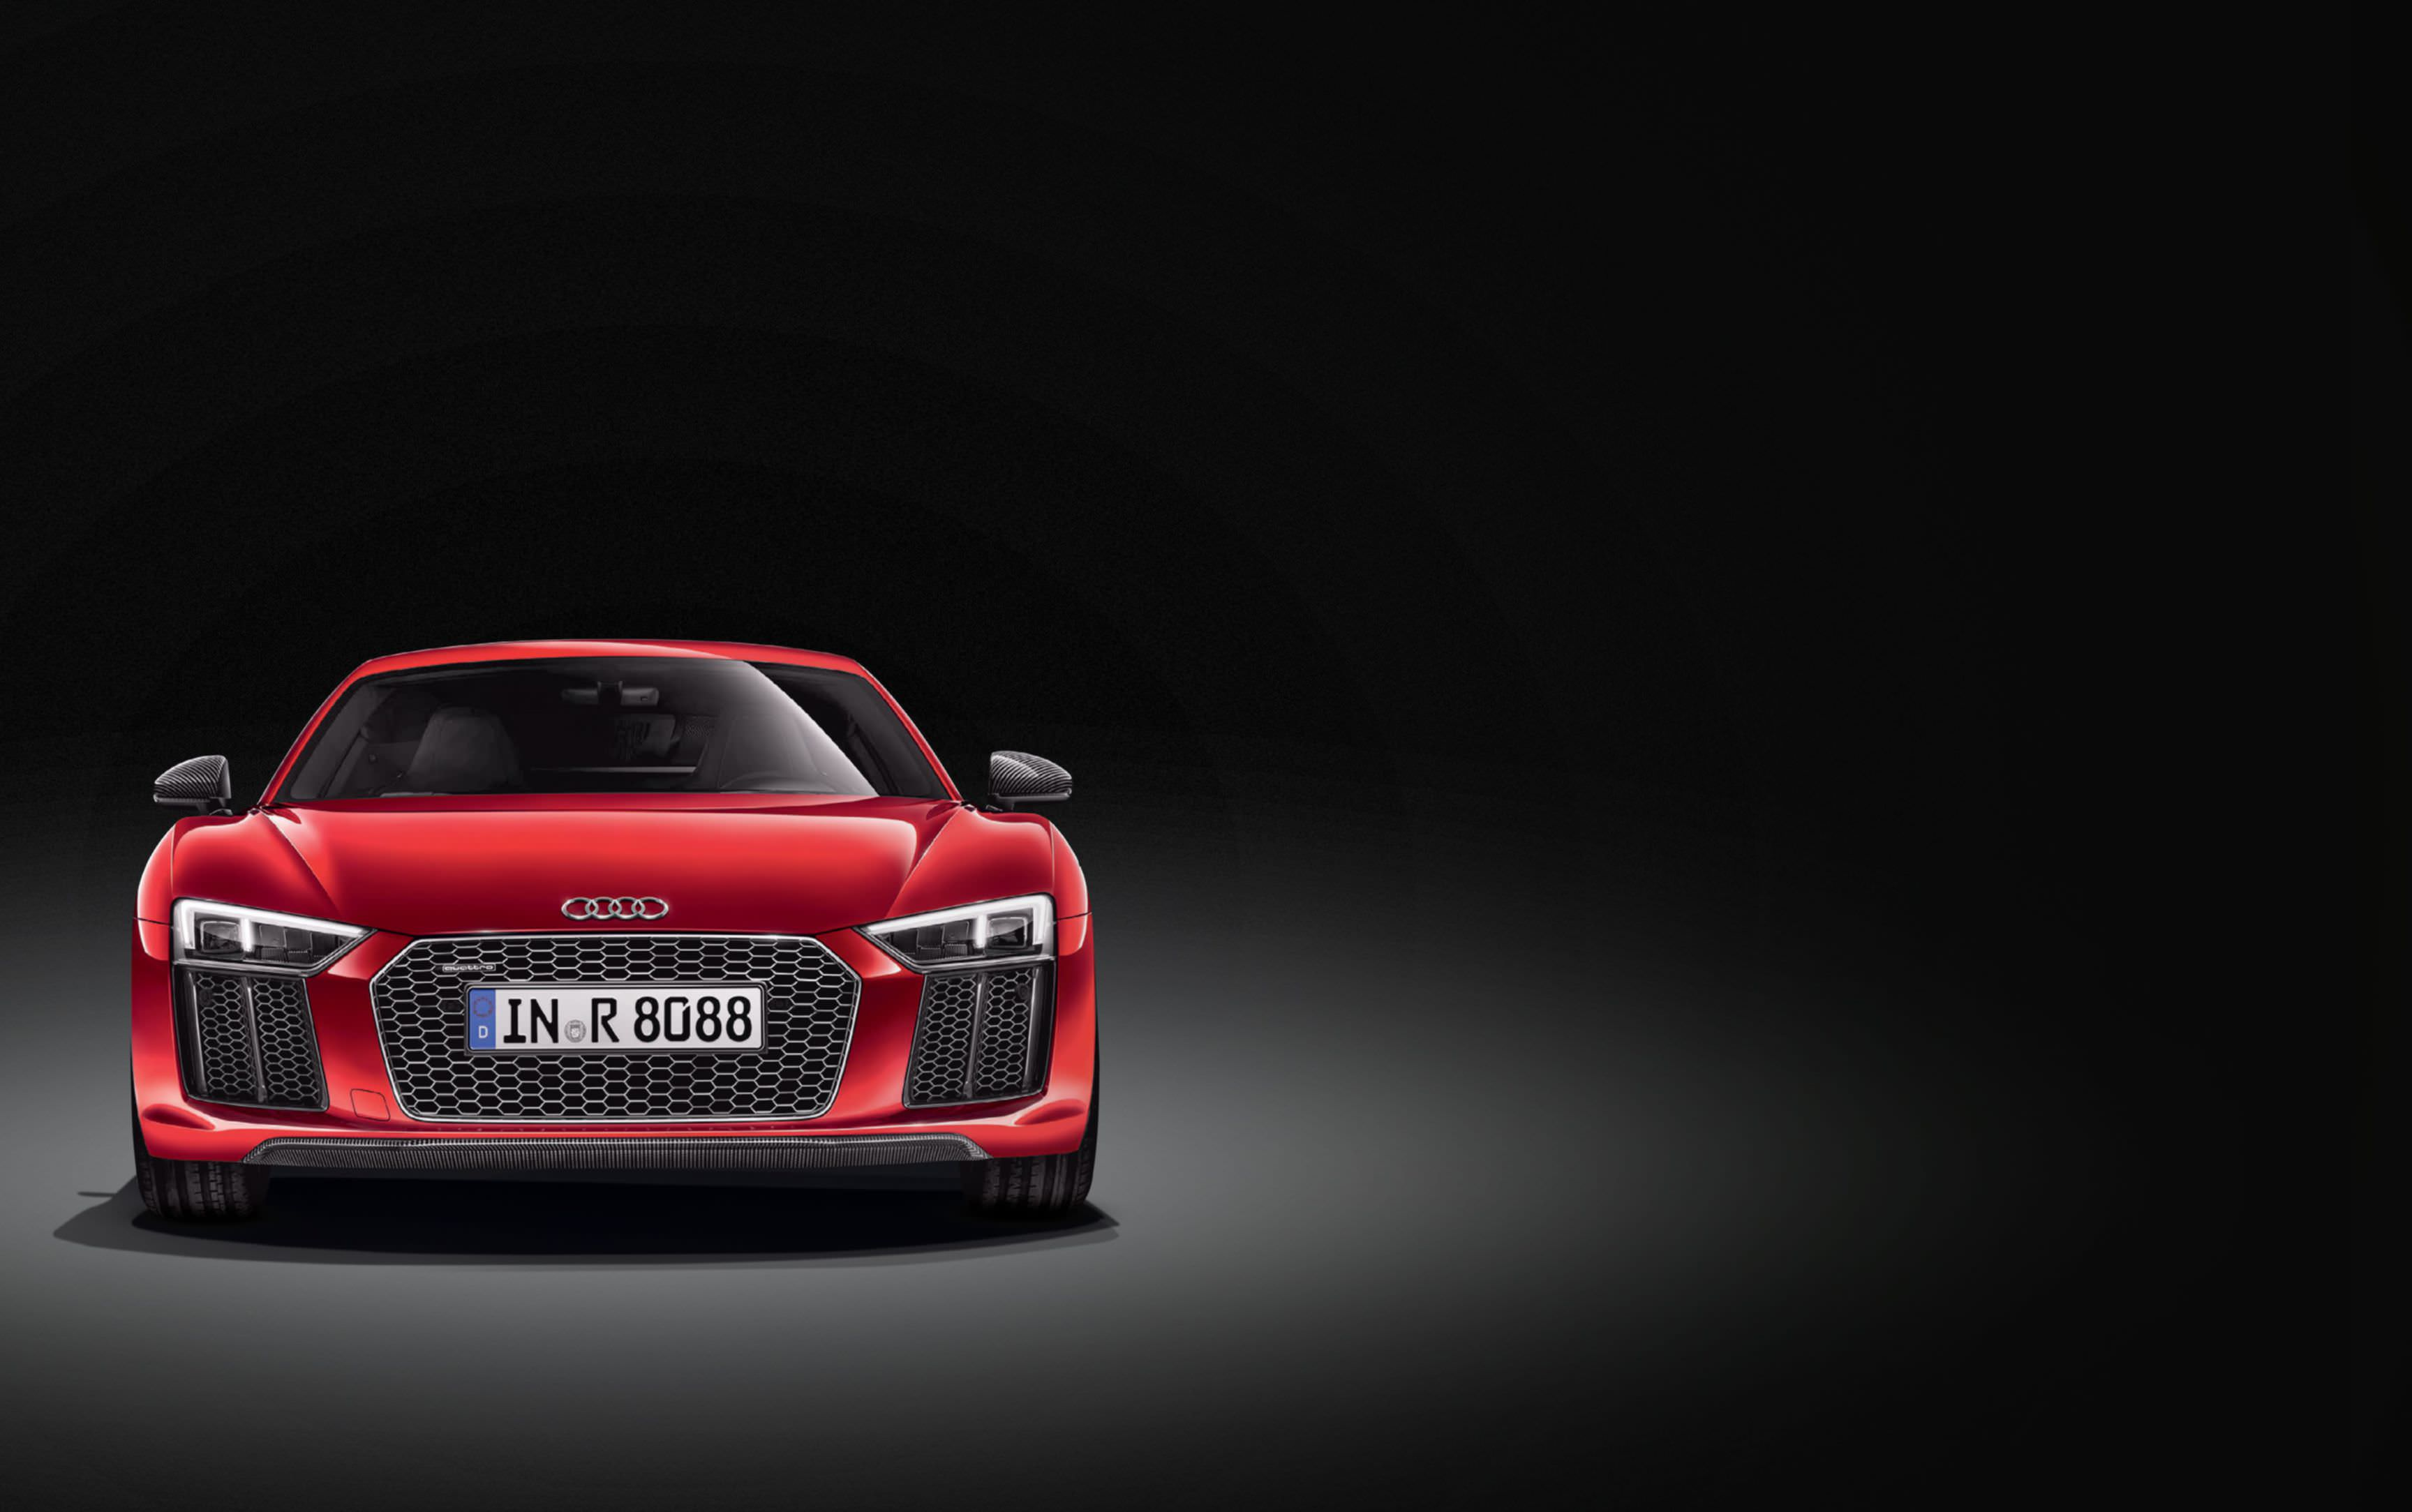 The Fastest Production Audi Ever: New Audi R8